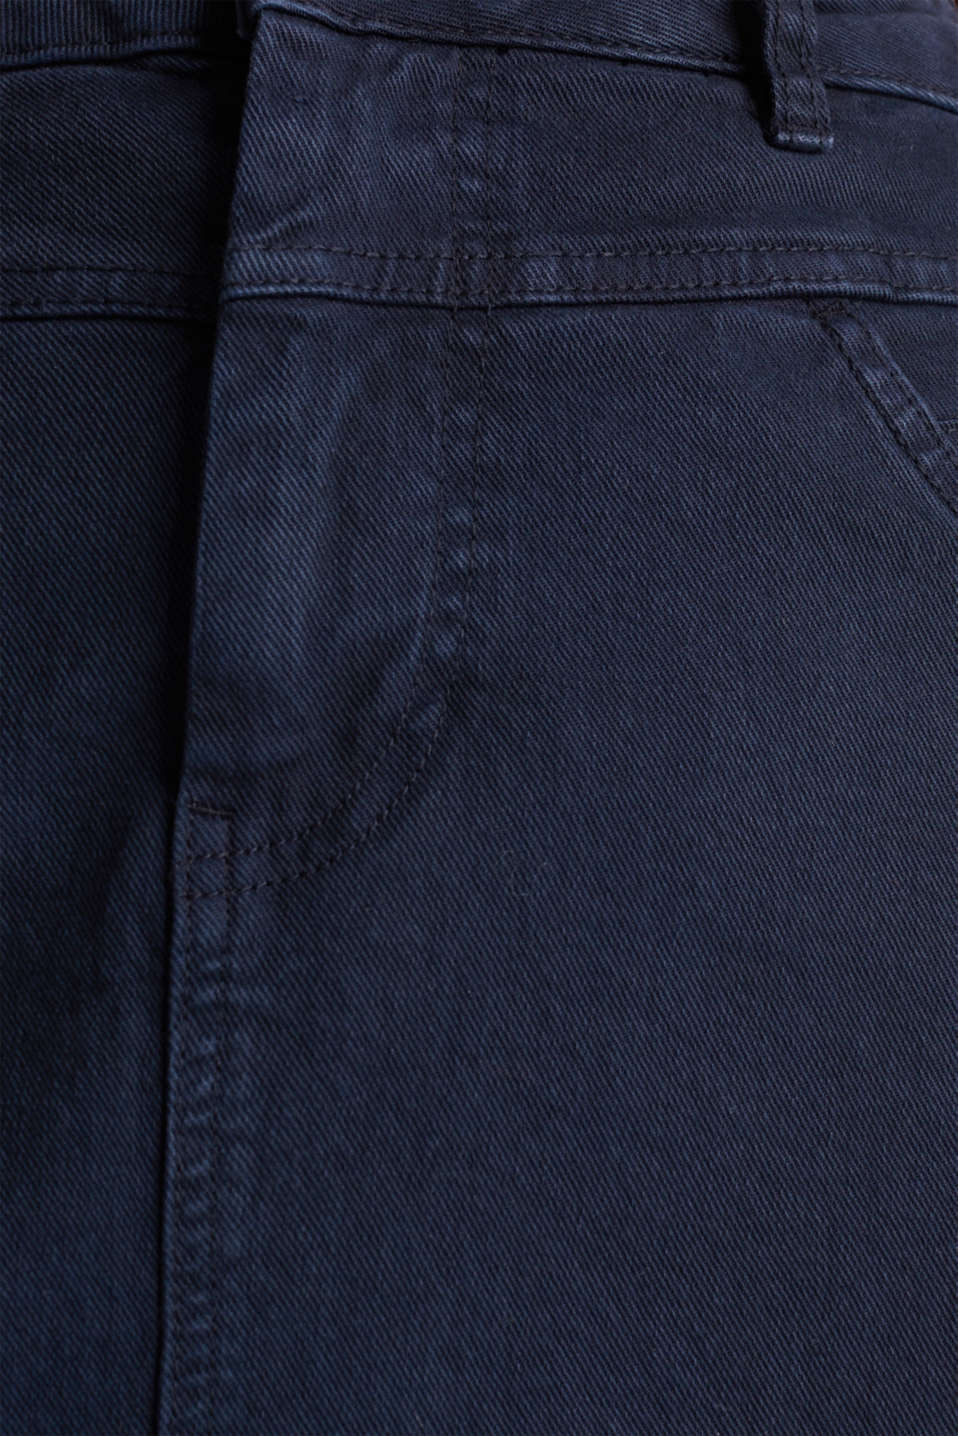 Stretch cotton skirt, NAVY, detail image number 4